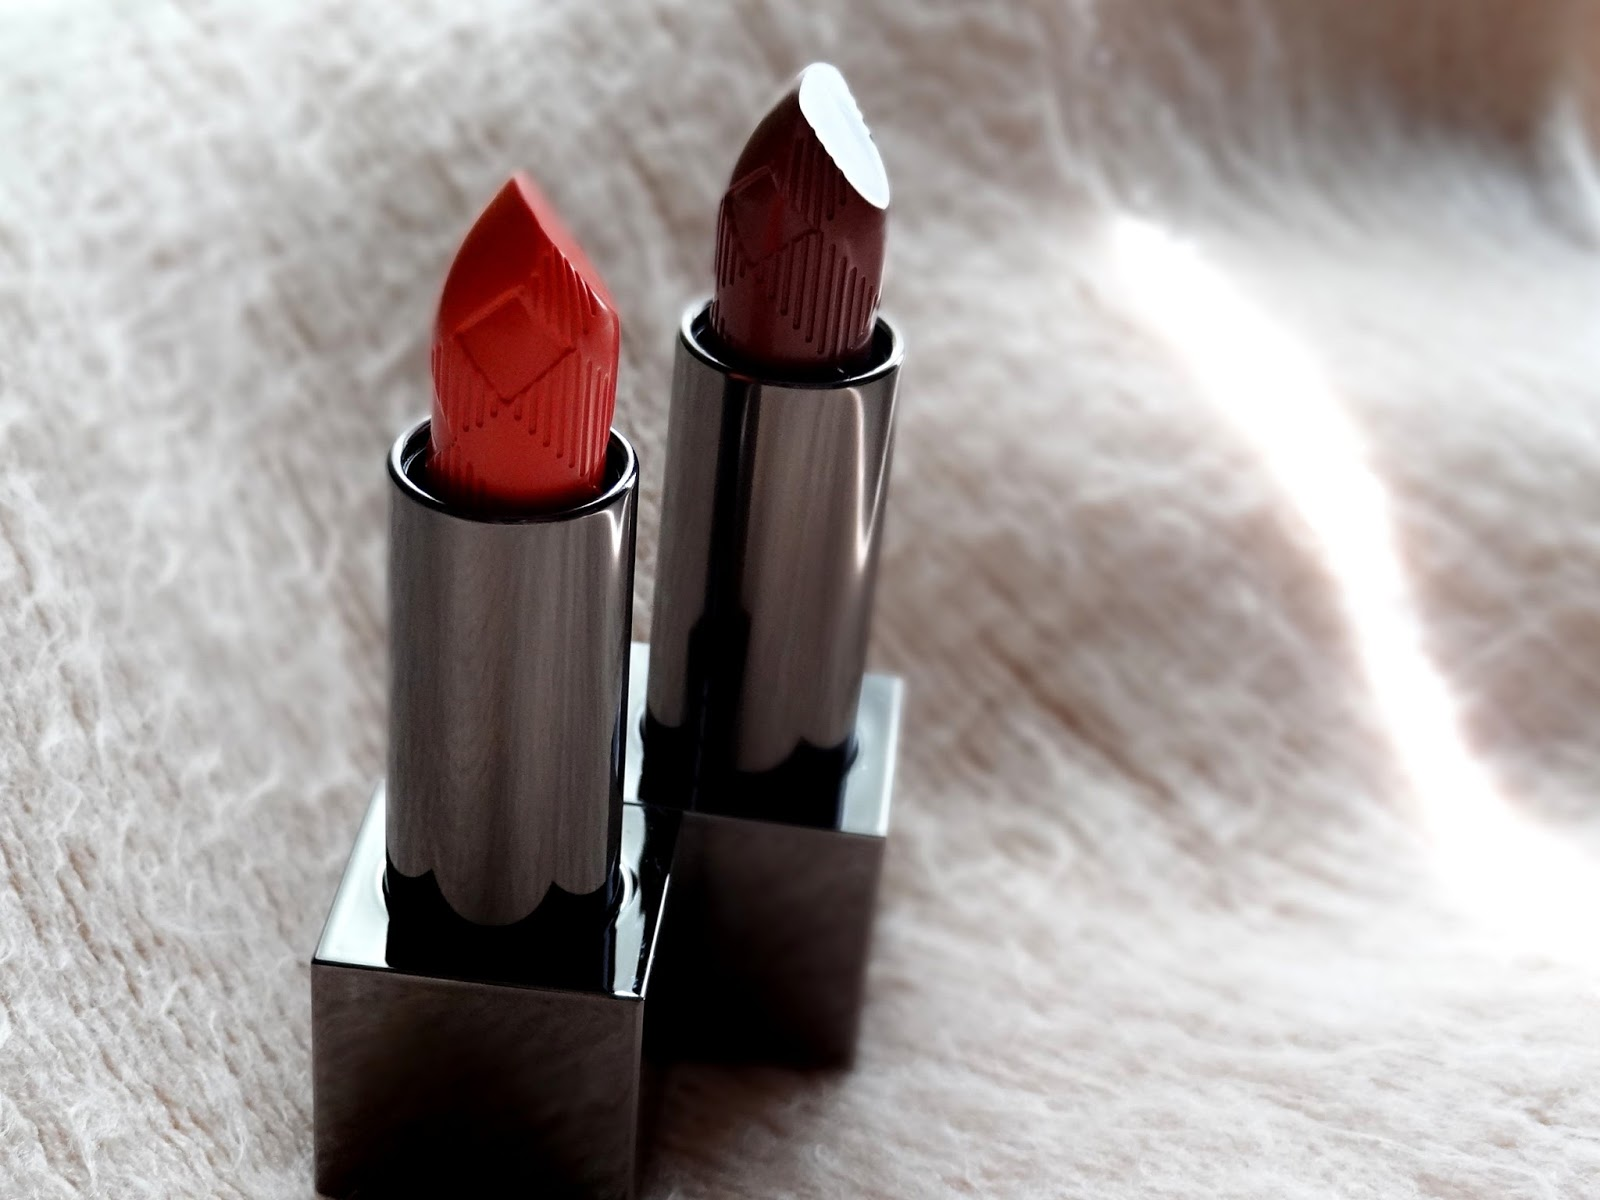 Burberry Kisses Lipsticks in Rose Blush, Coral Pink Review, Photos & Swatches